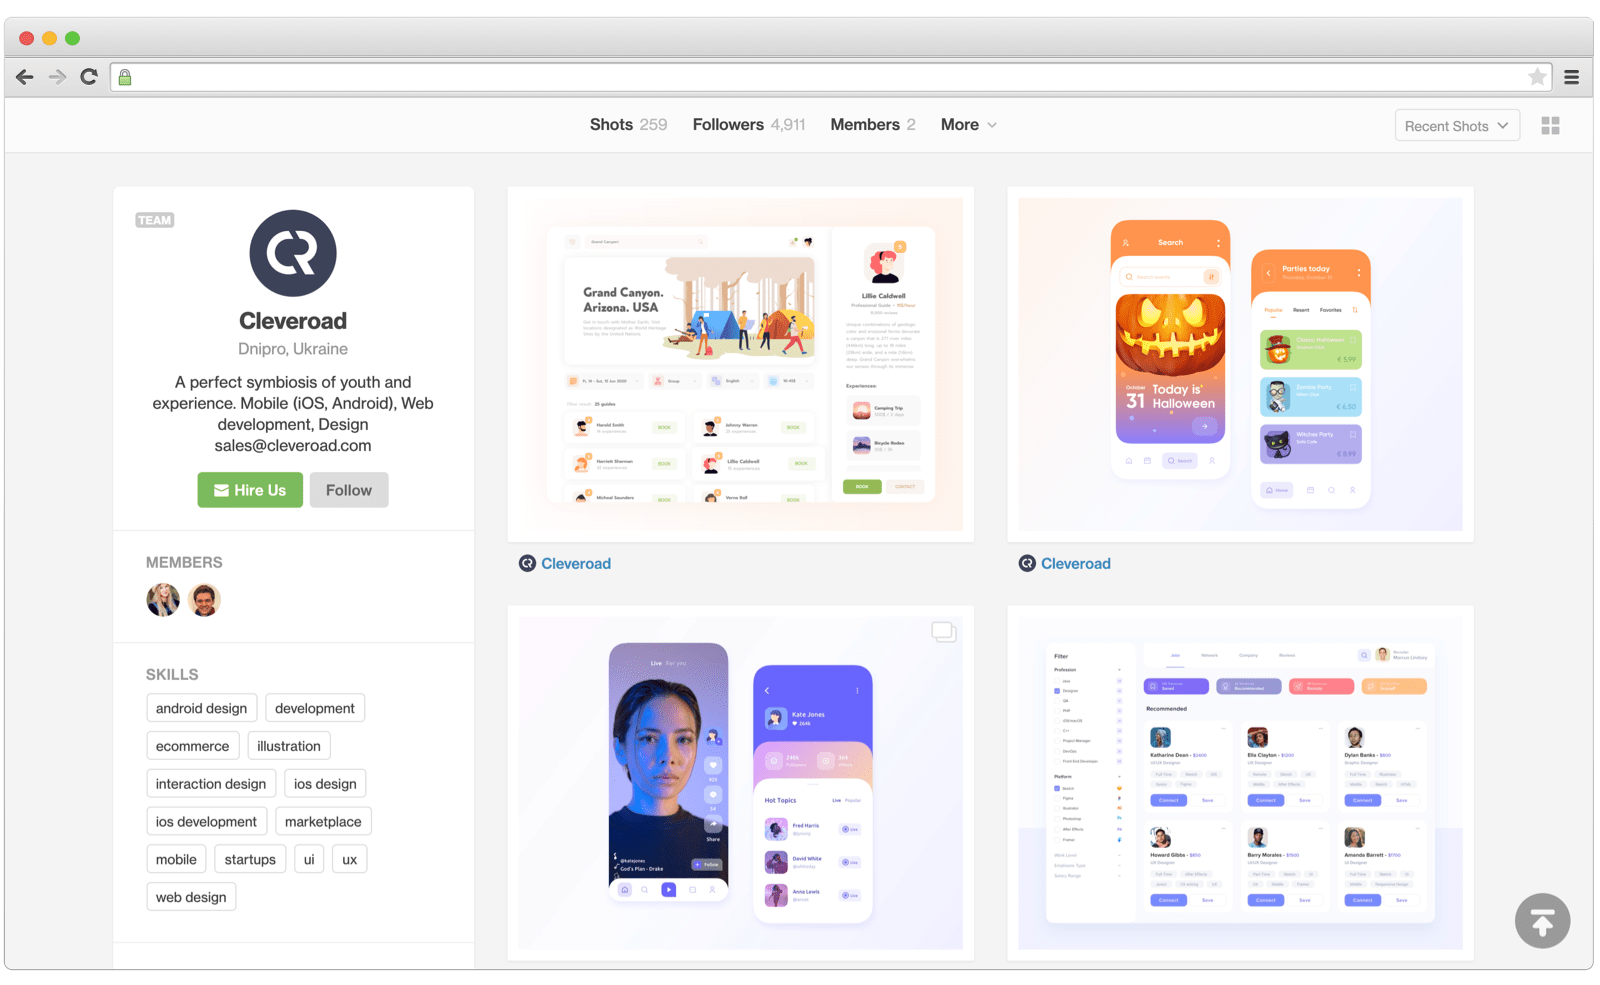 Cleveroad Dribbble profile